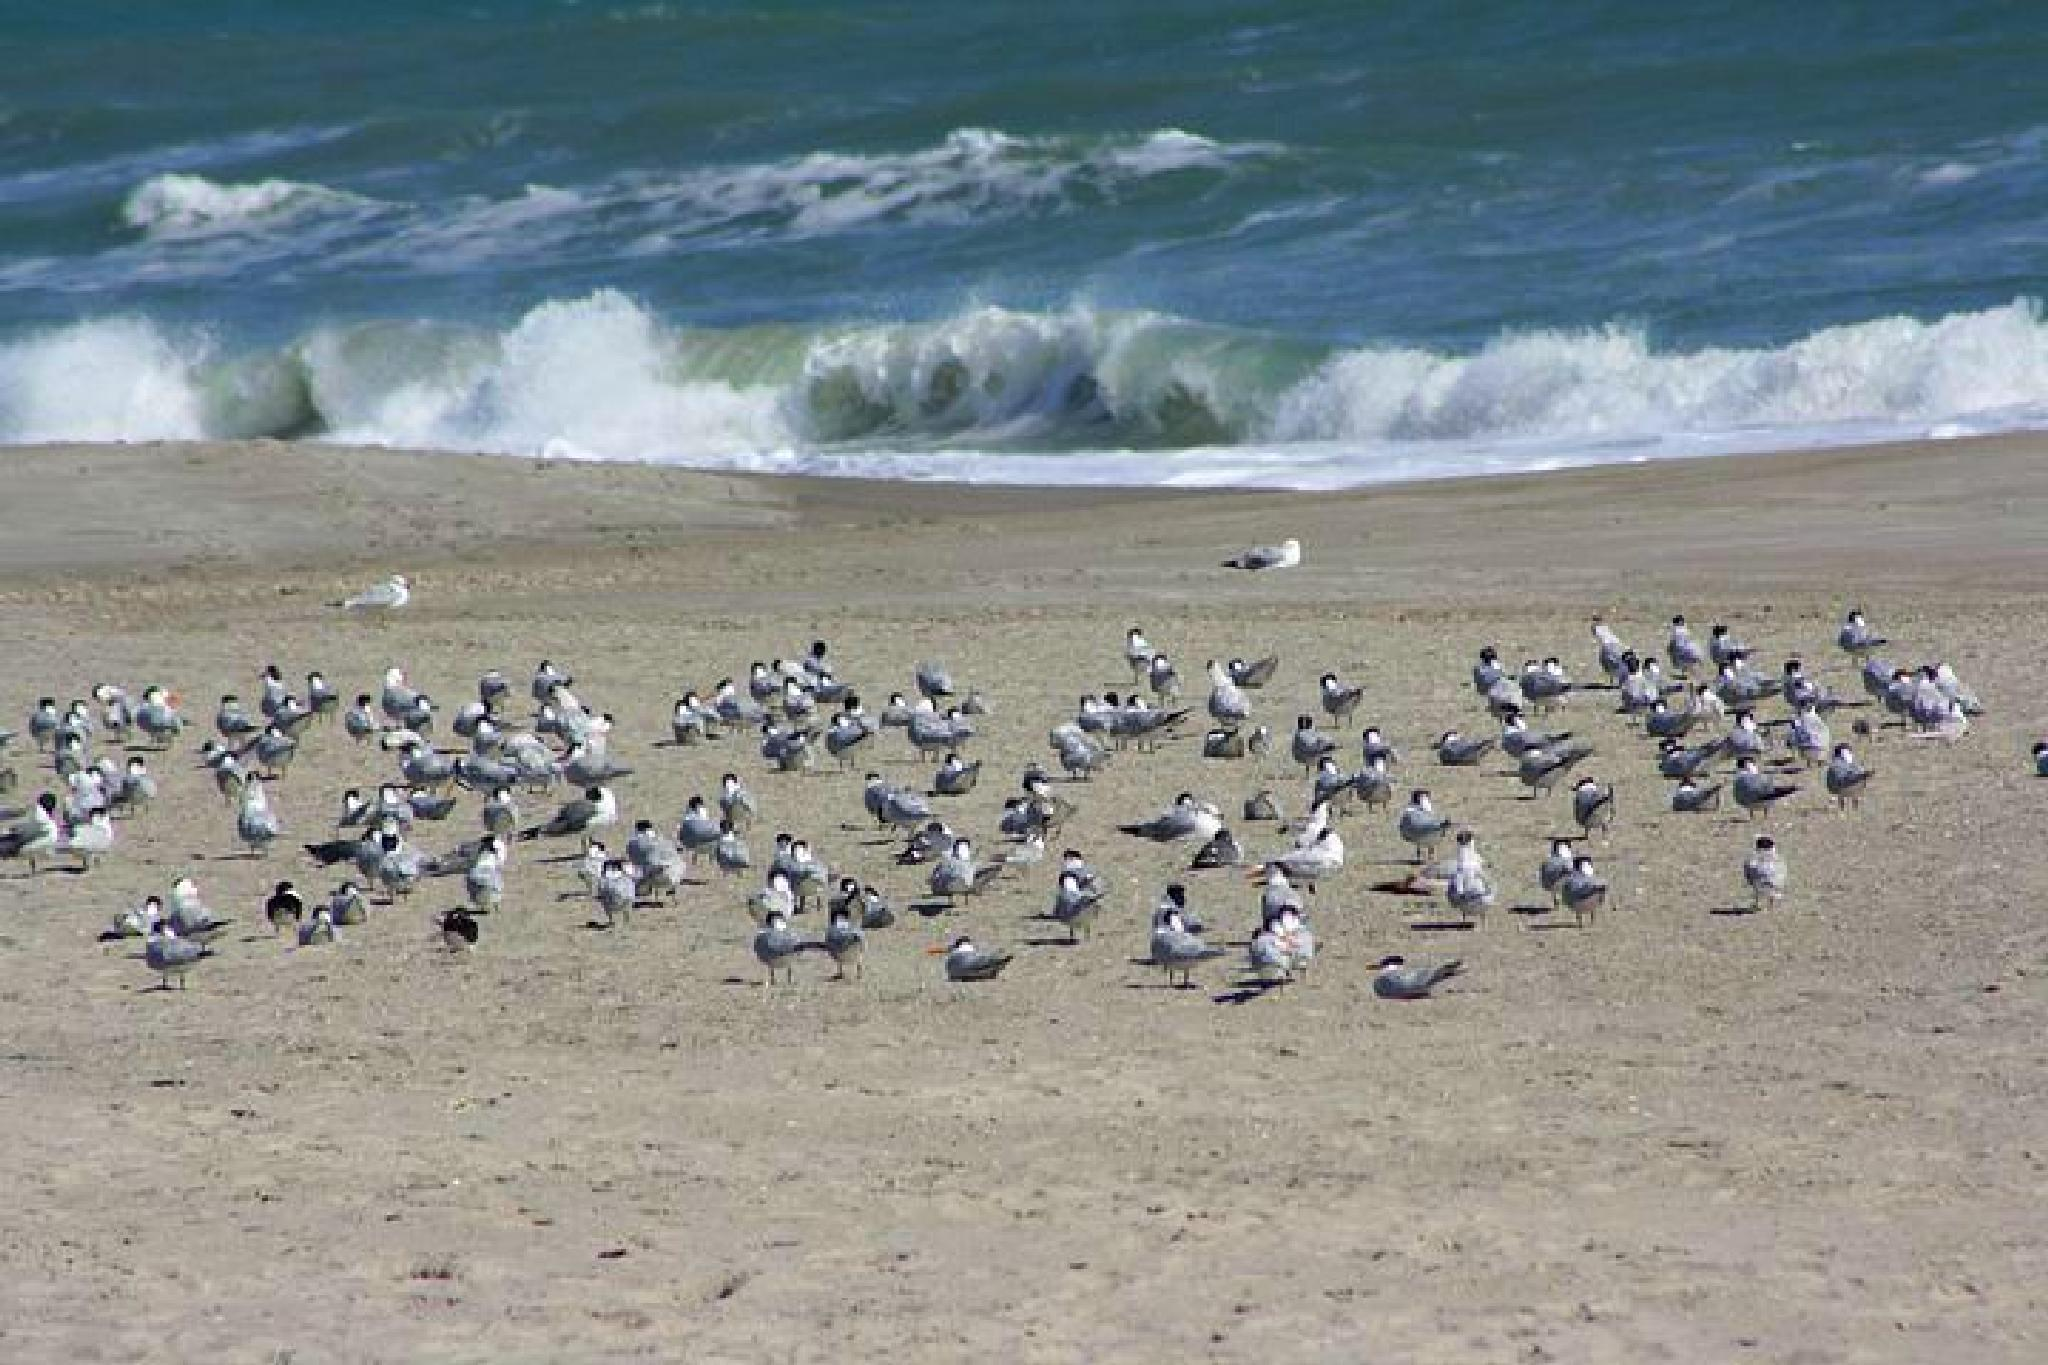 Seagulls take over by veronica.clarksanders